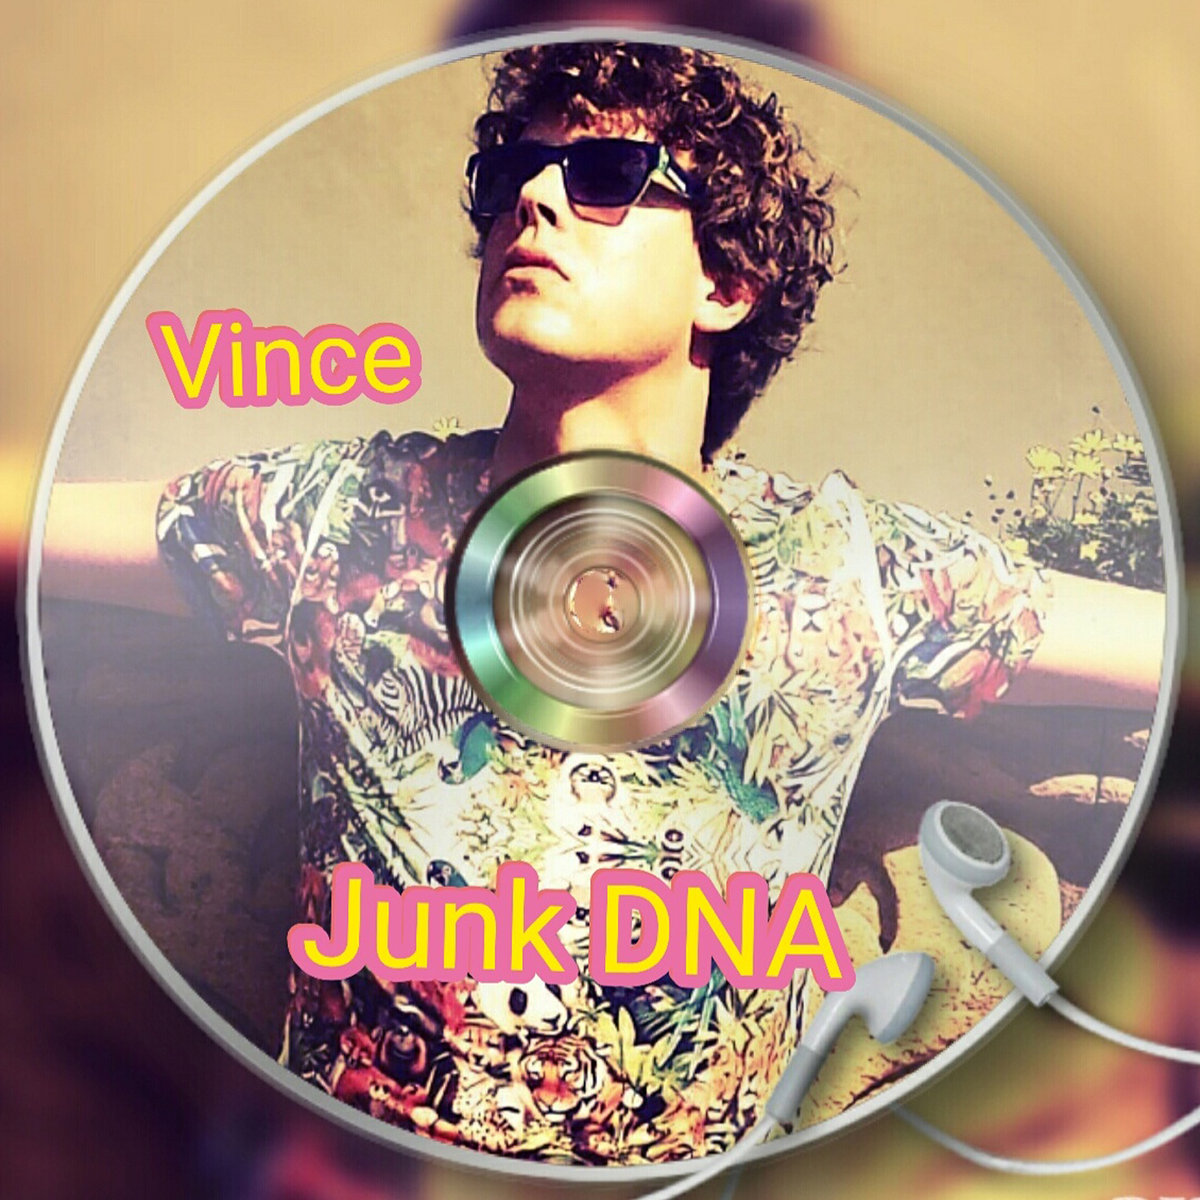 Vince - Funky Ship @ 'Junk DNA' album (pop, pop punk)